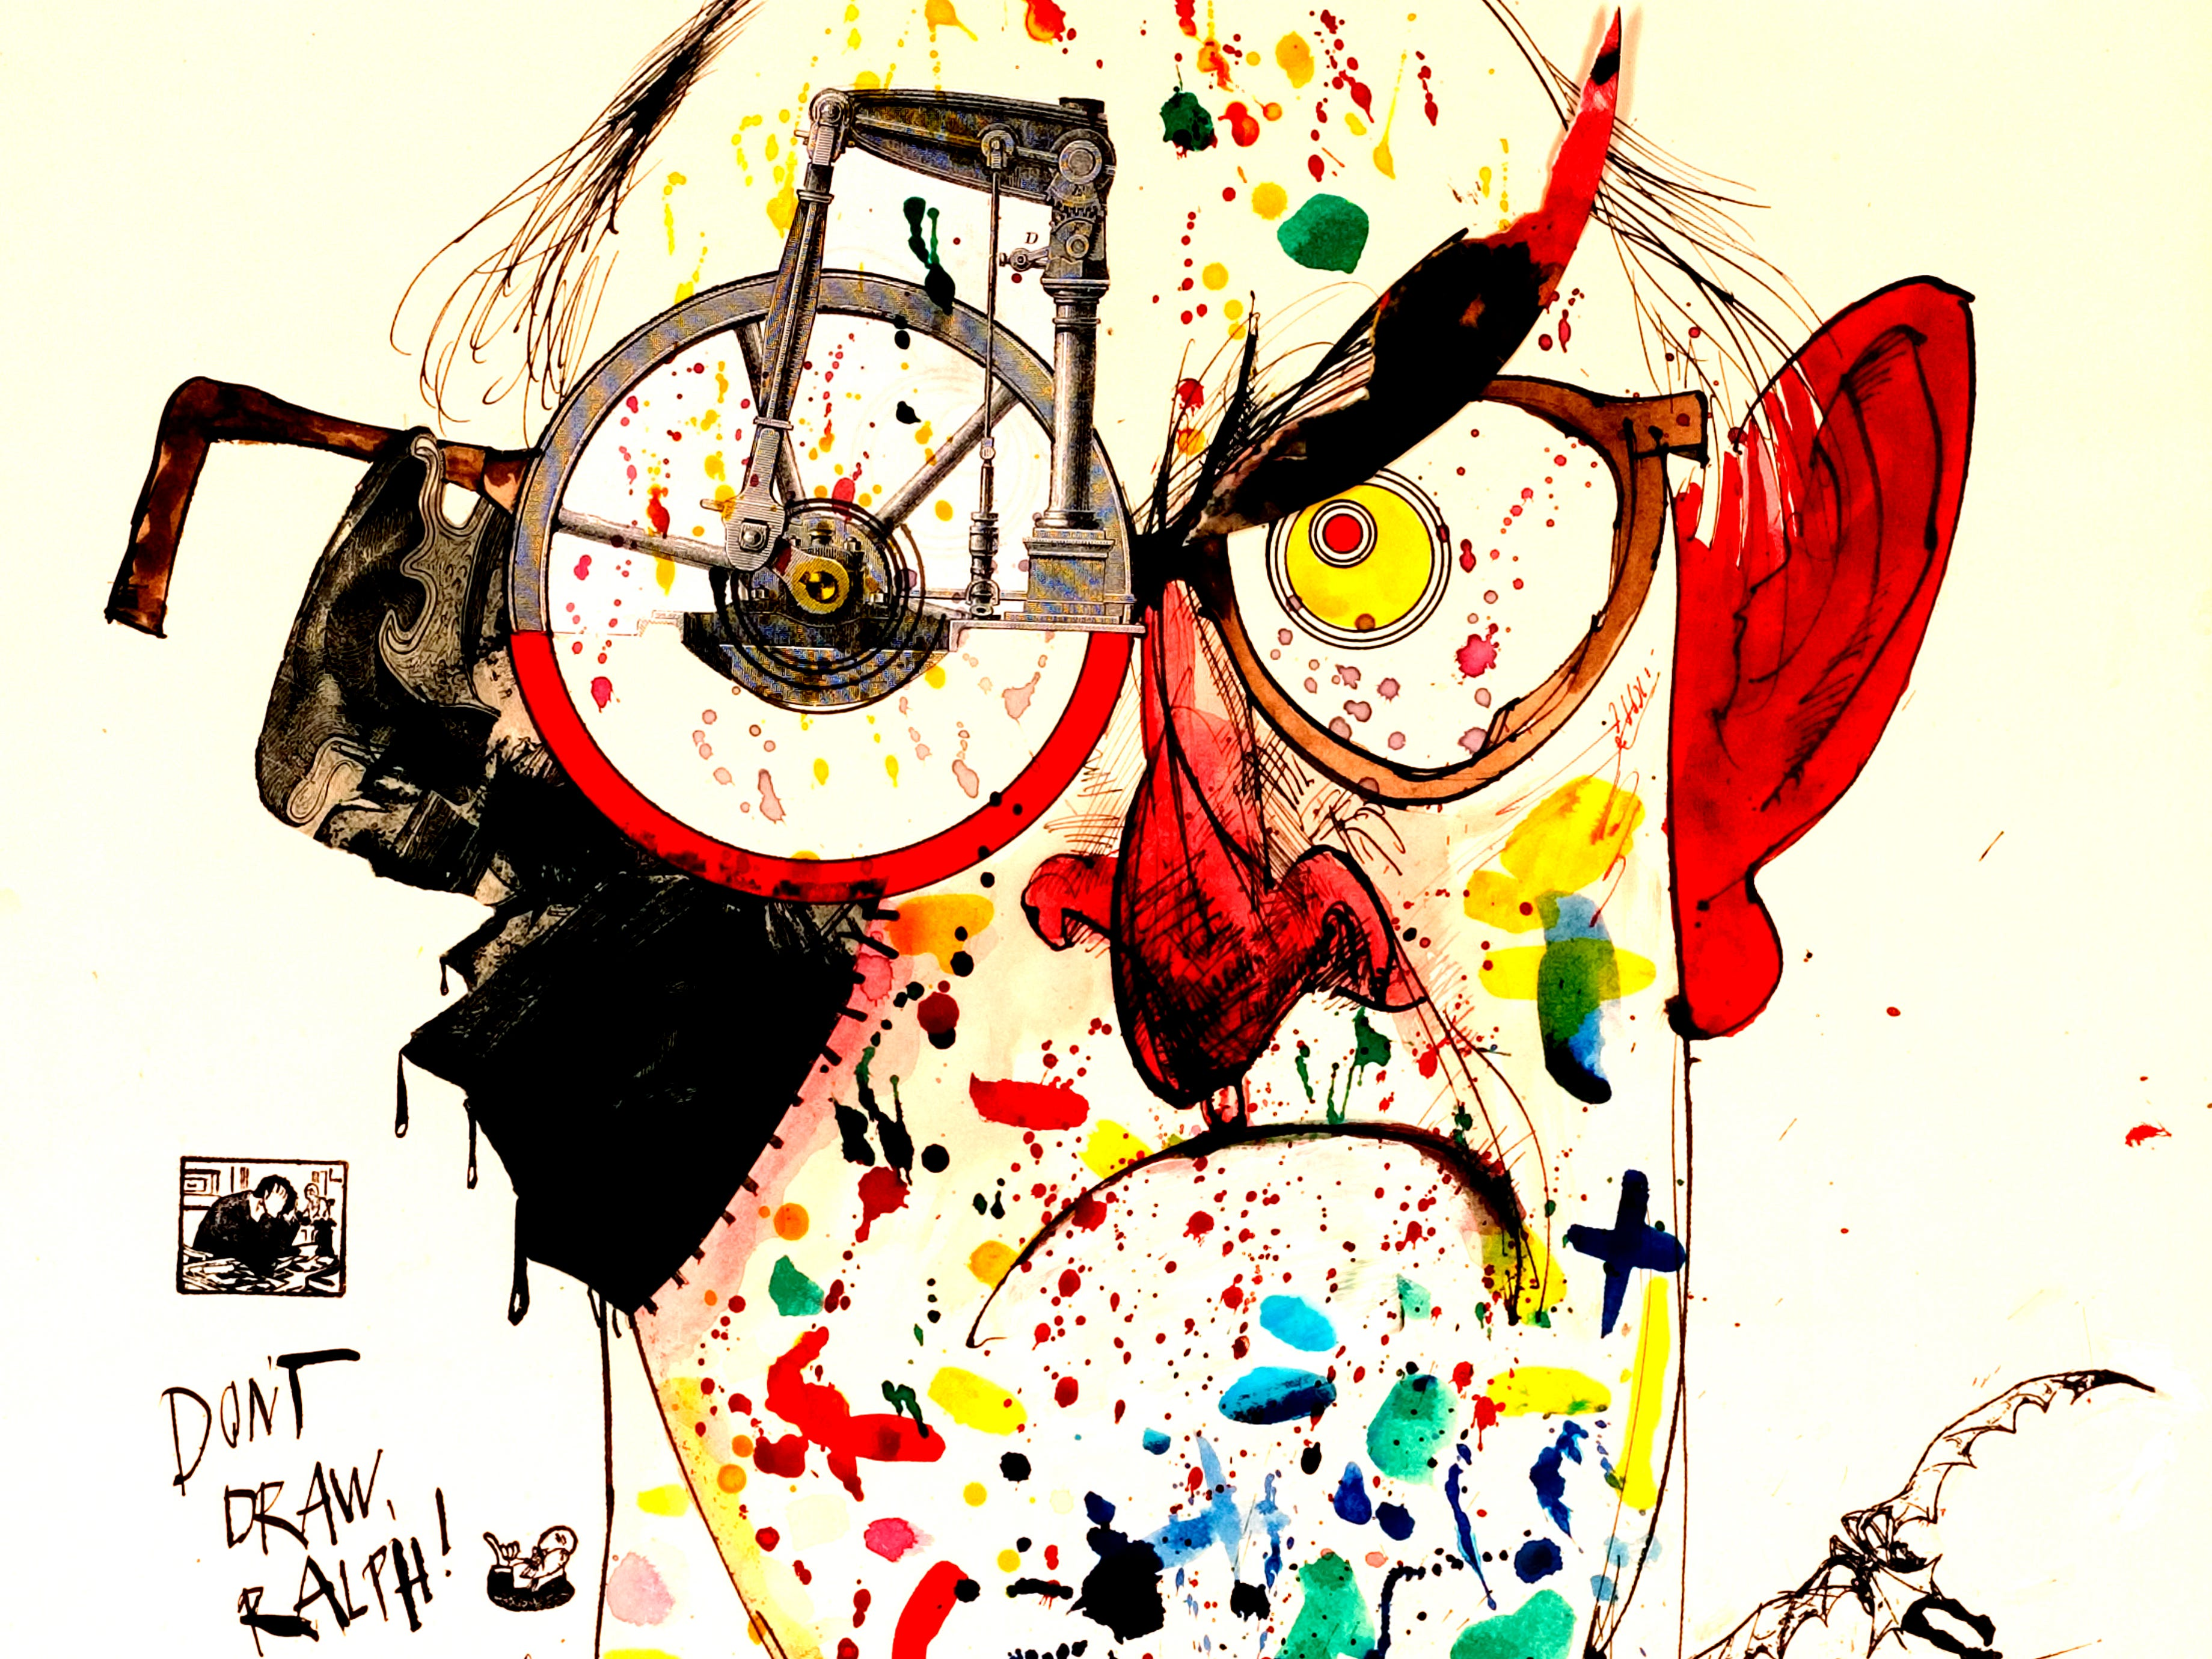 The University of Kentucky Art Museum is one of only three American museums to host a touring exhibition dedicated to Ralph Steadman's work.